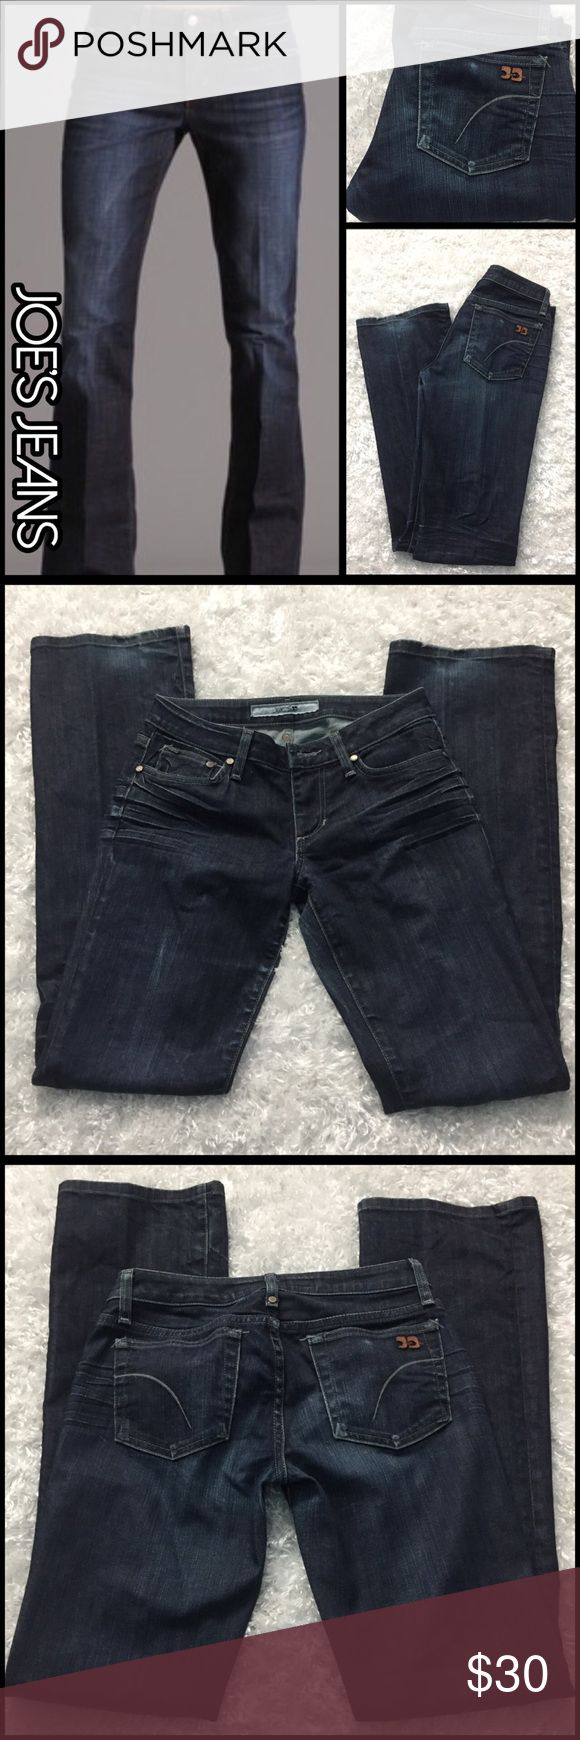 JOE's Jeans Vincent wash boot cut⚡️Flash sale⚡️ JOE's Jeans low rise Vincent wash boot cut. In excellent condition just minor fray and discoloration on heels. Overall these are an awesome pair of jeans!!! Size 27x33.5 Joe's Jeans Jeans Boot Cut